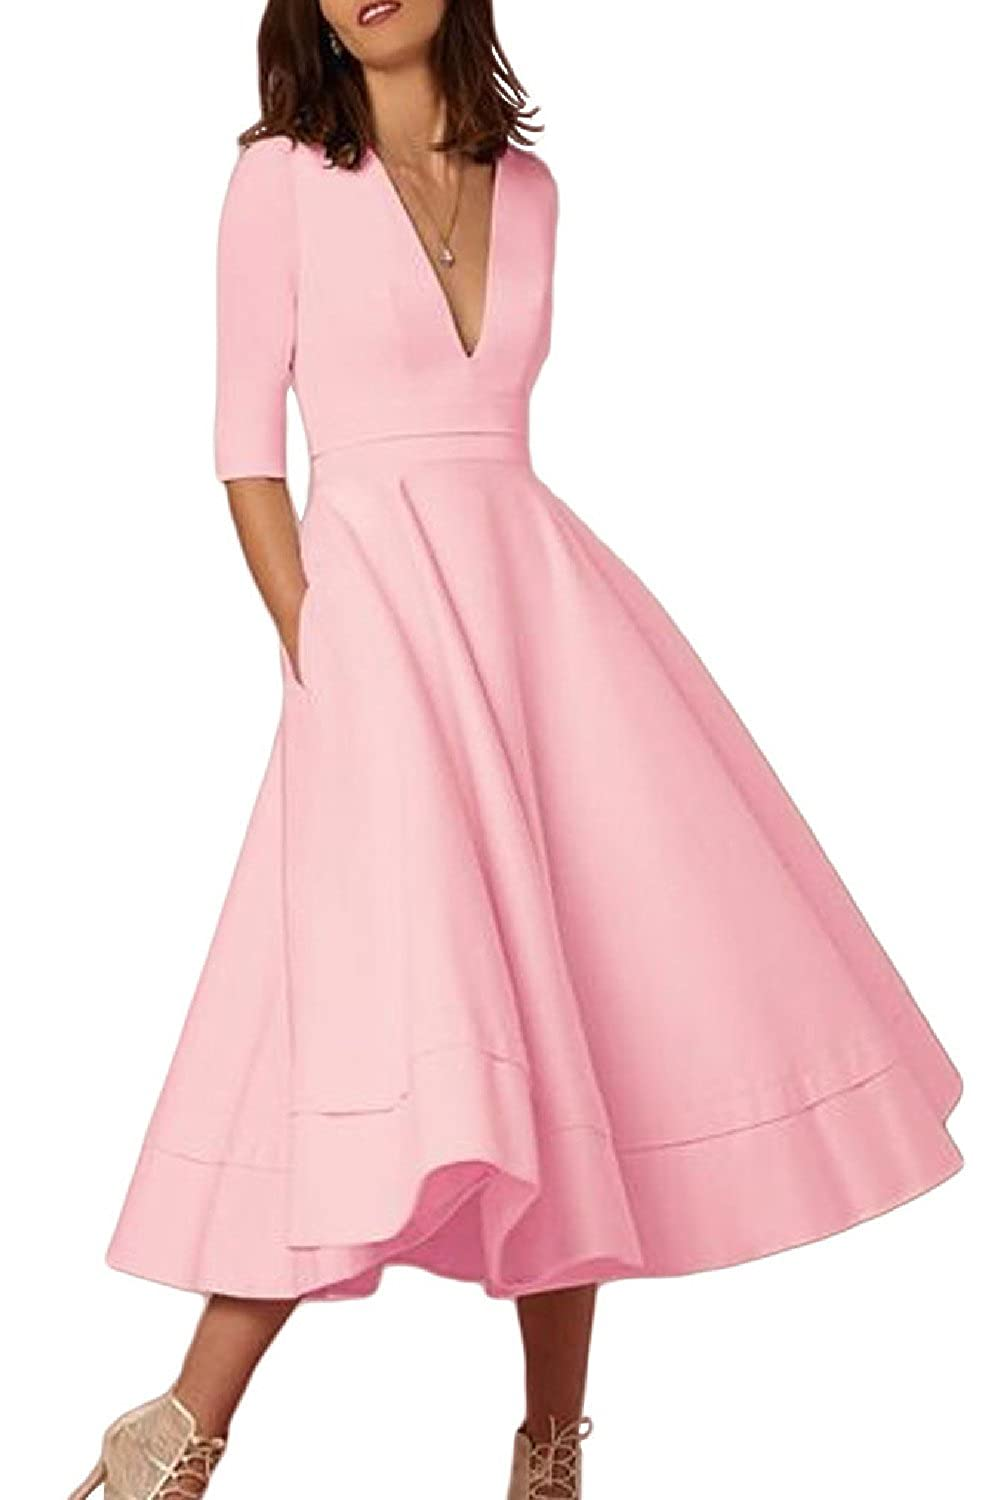 Women's Elegant Deep V-Neck 3/4 Sleeve Swing Party Summer Prom Dress CAWDL009